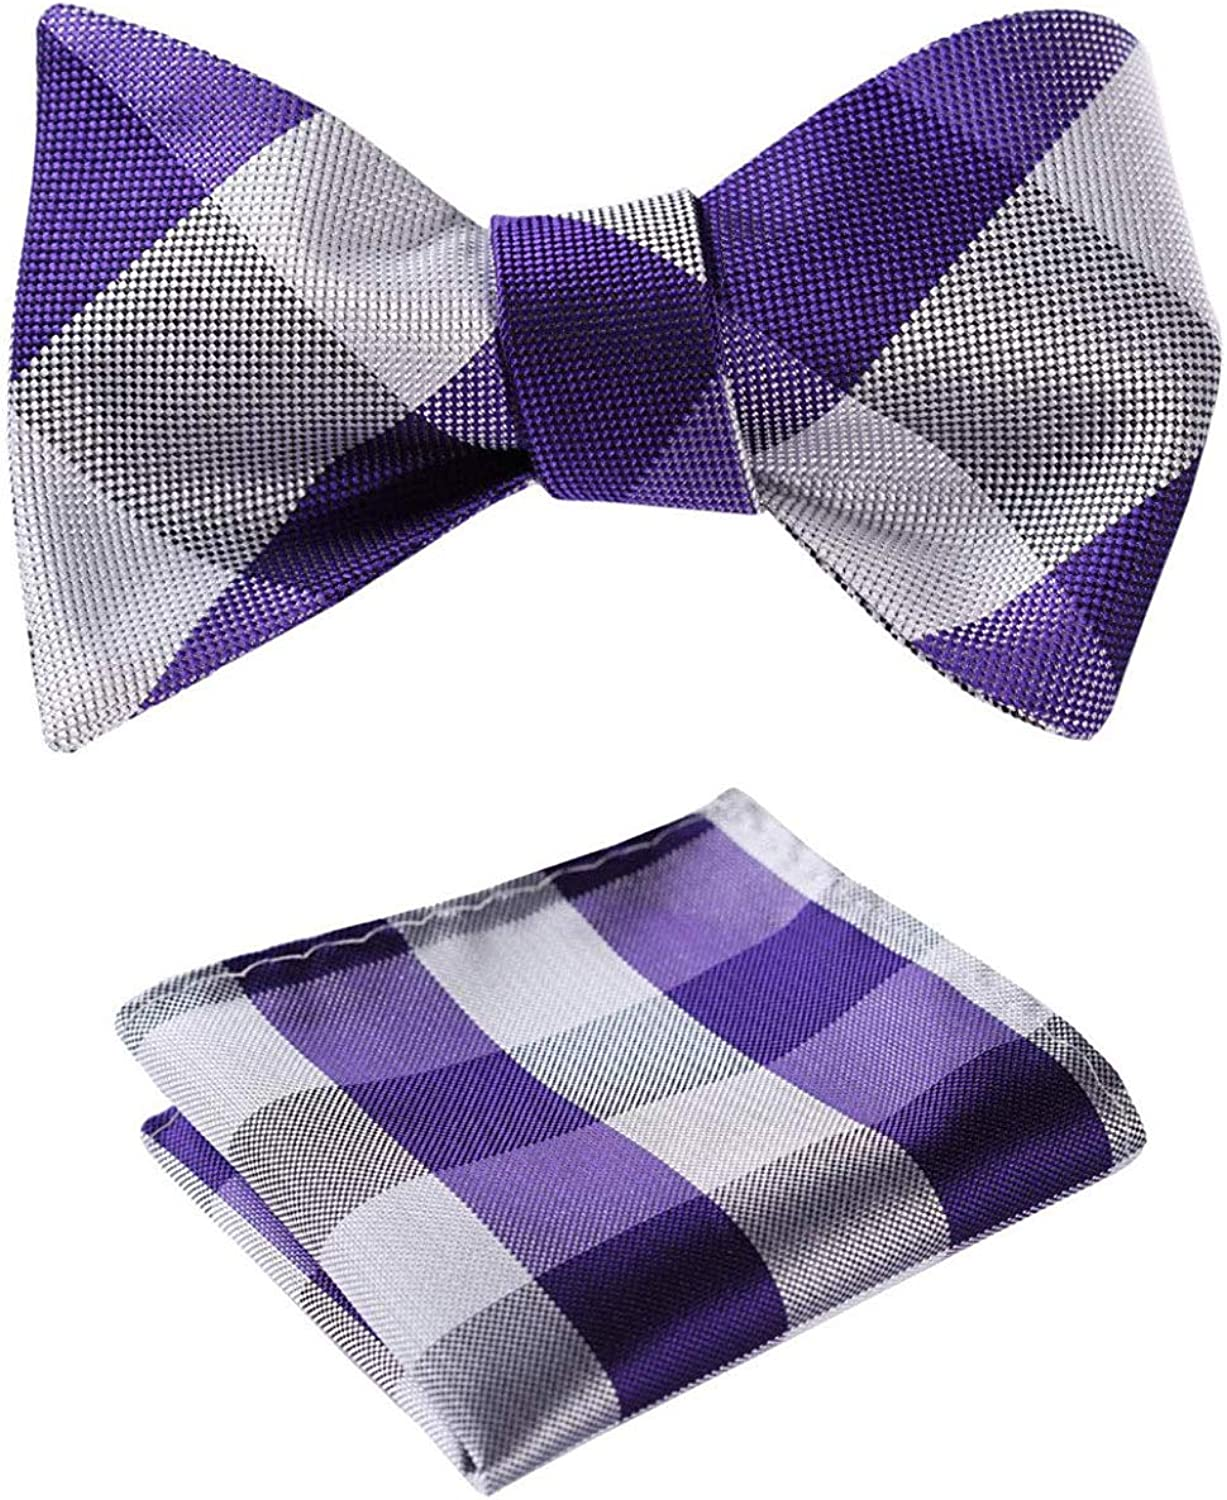 Men's Check Bowtie Jacquard Woven Self Bow Tie and Pocket Square Set